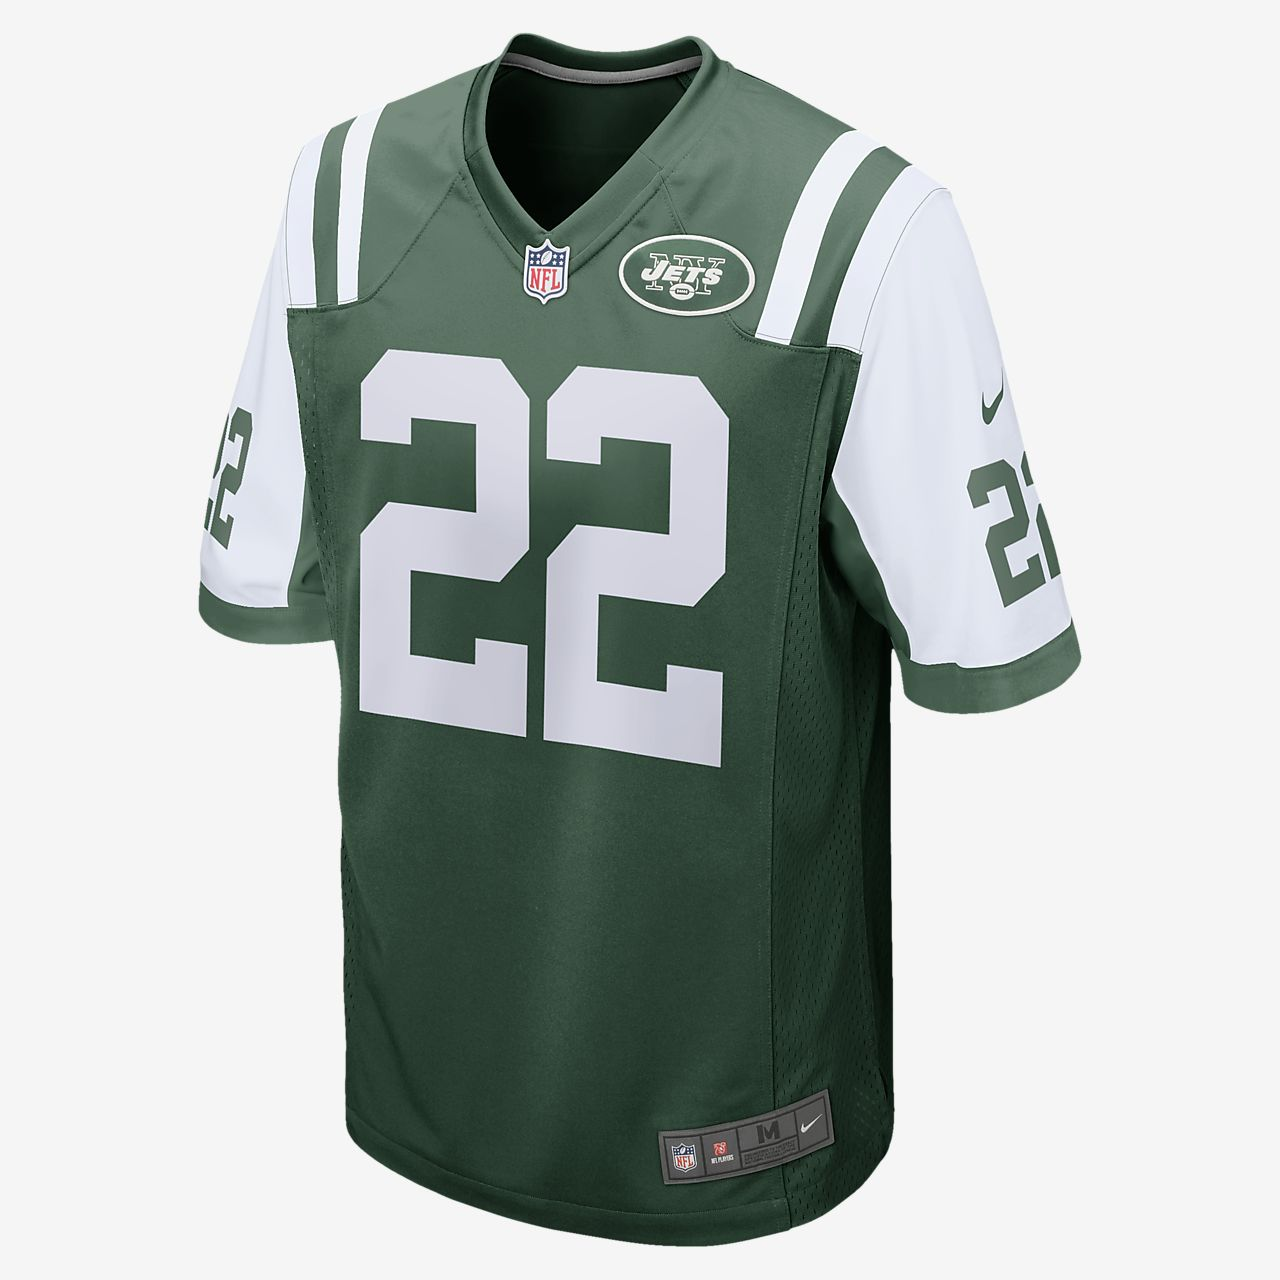 Maillot de football américain NFL New York Jets (Matt Forte